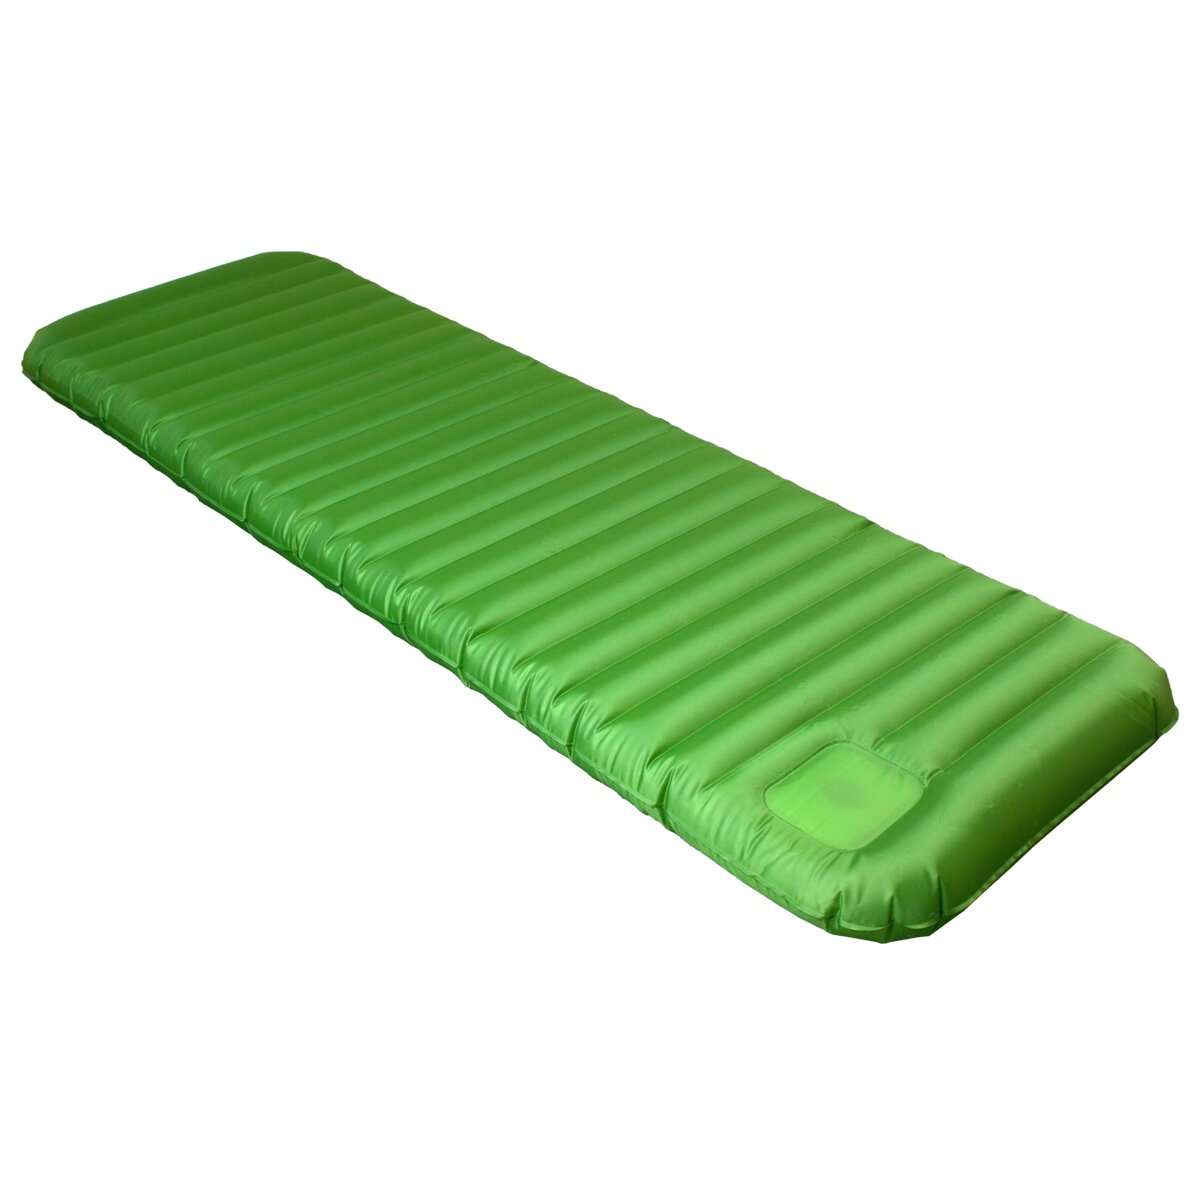 Altimair Frontier Camping 5 Quot Air Mattress With Built In